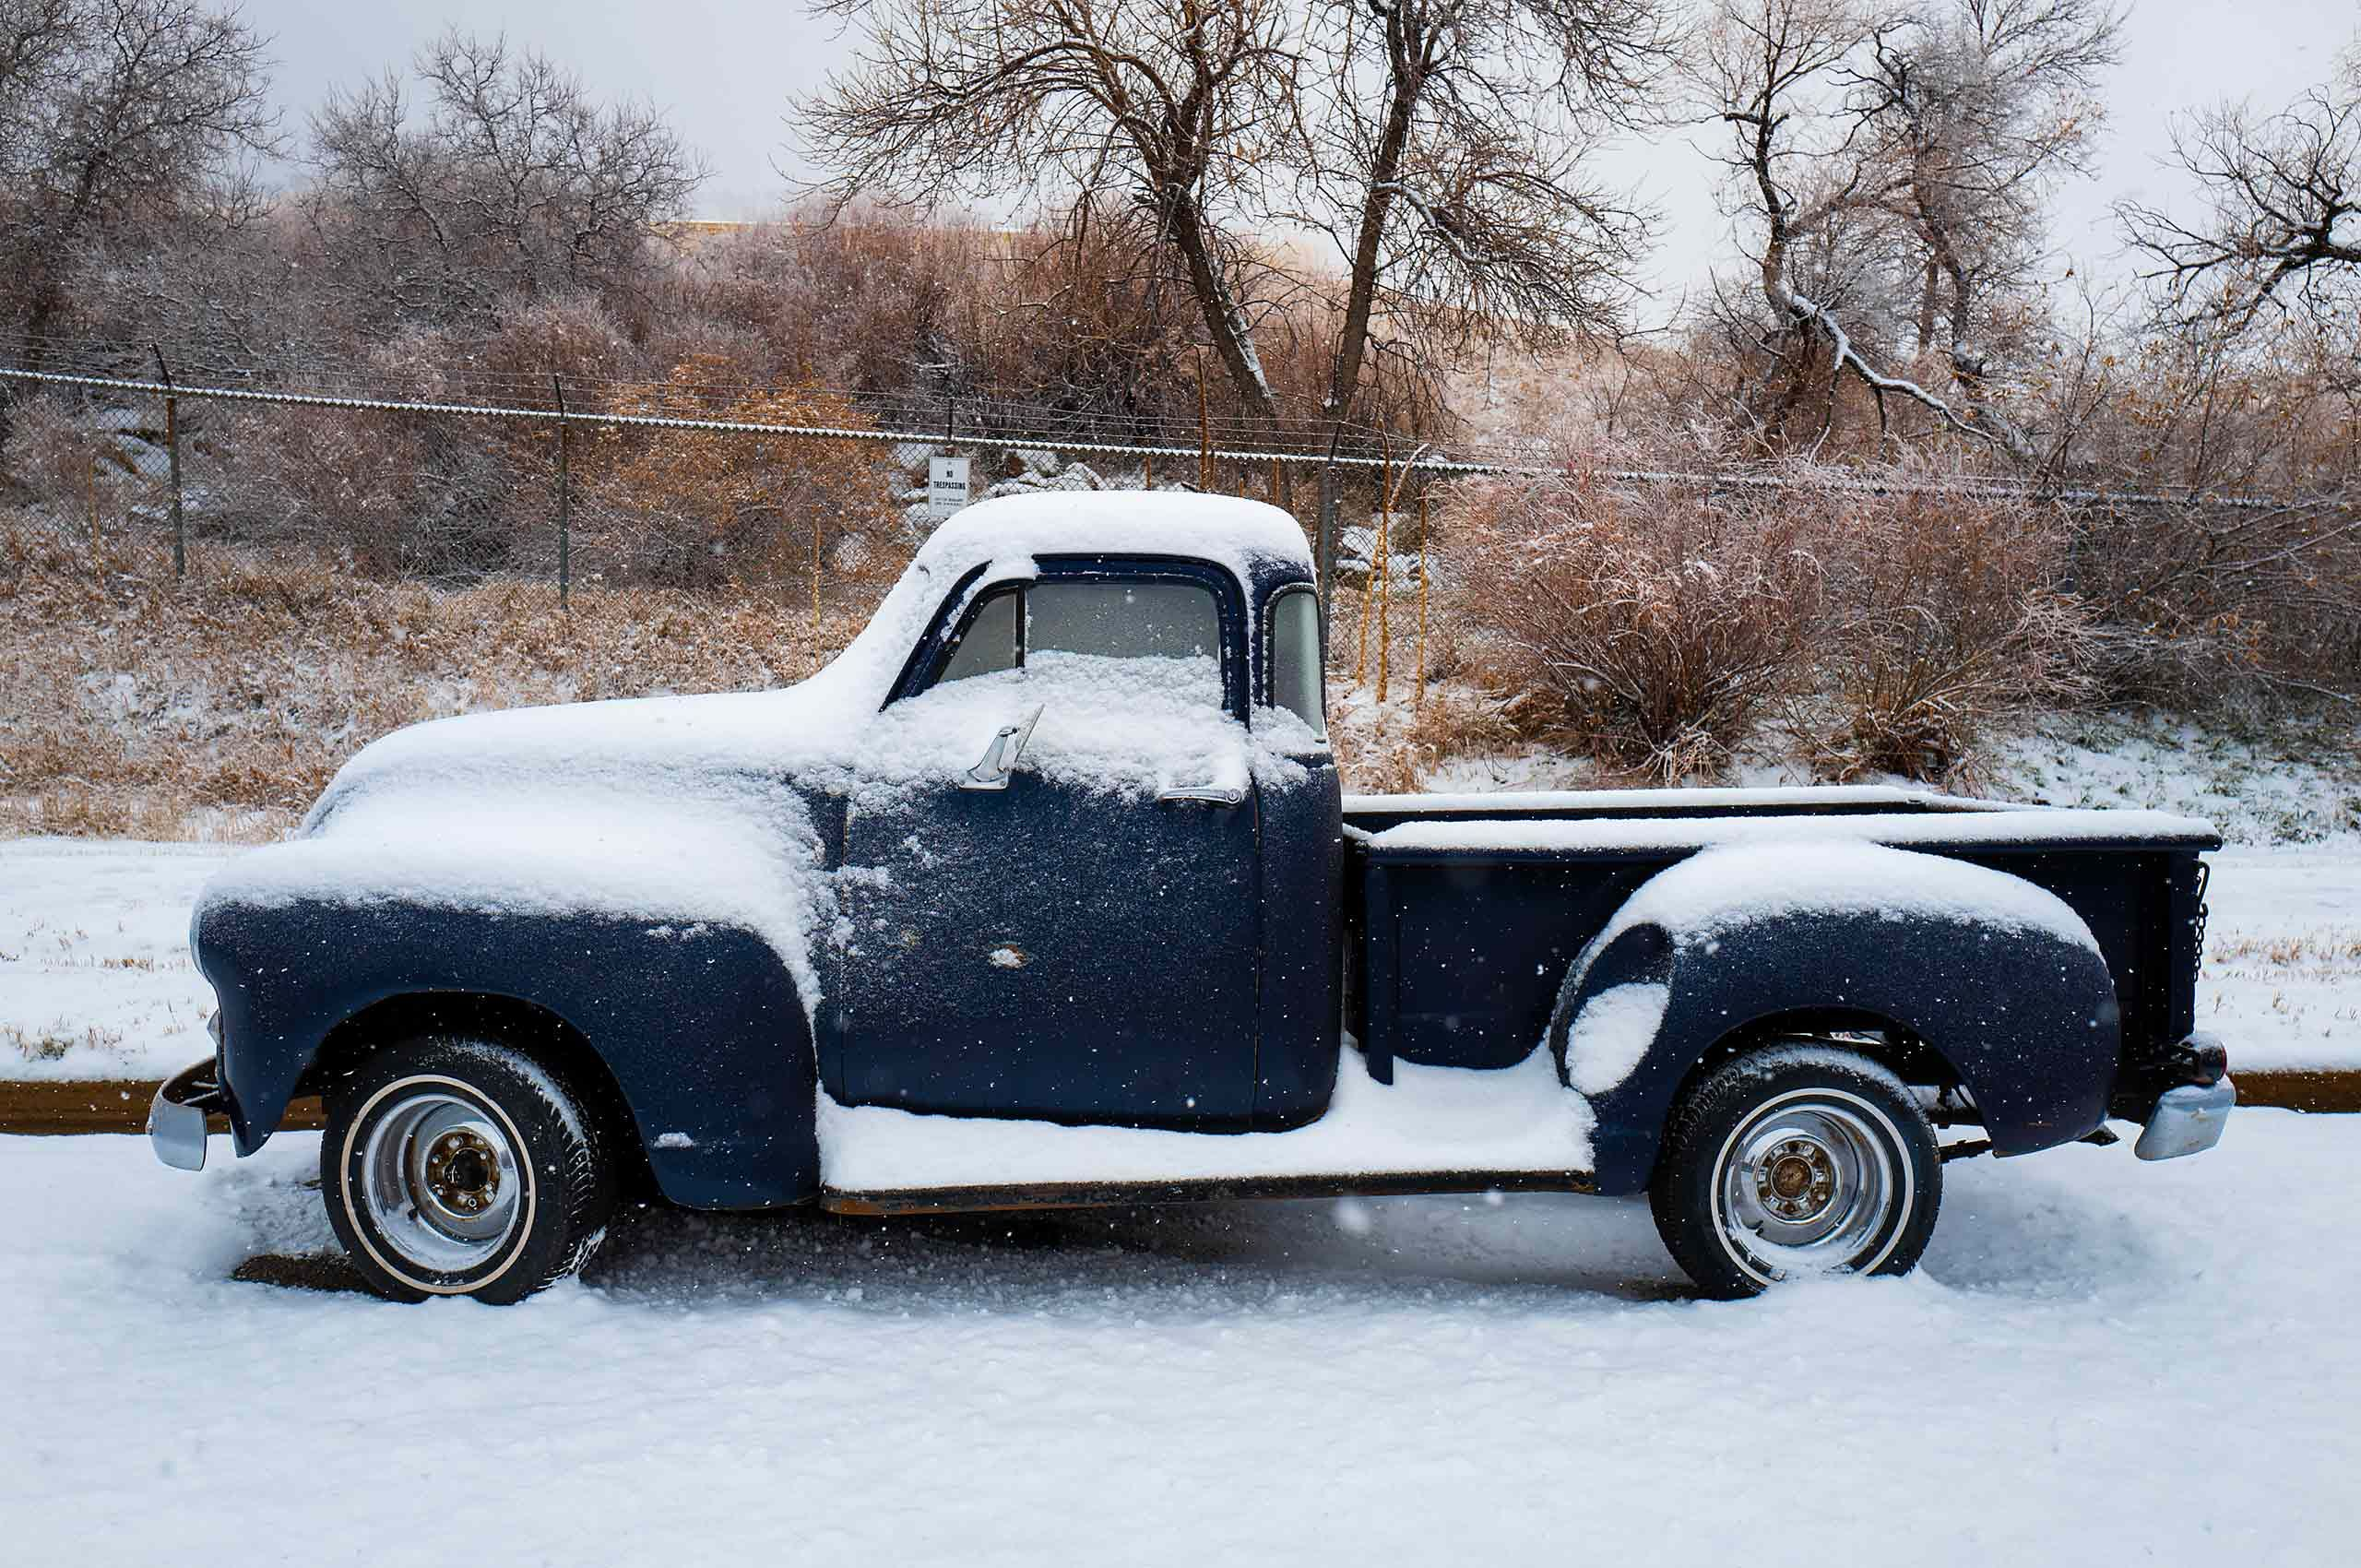 Old truck outskirts of boulder colorada